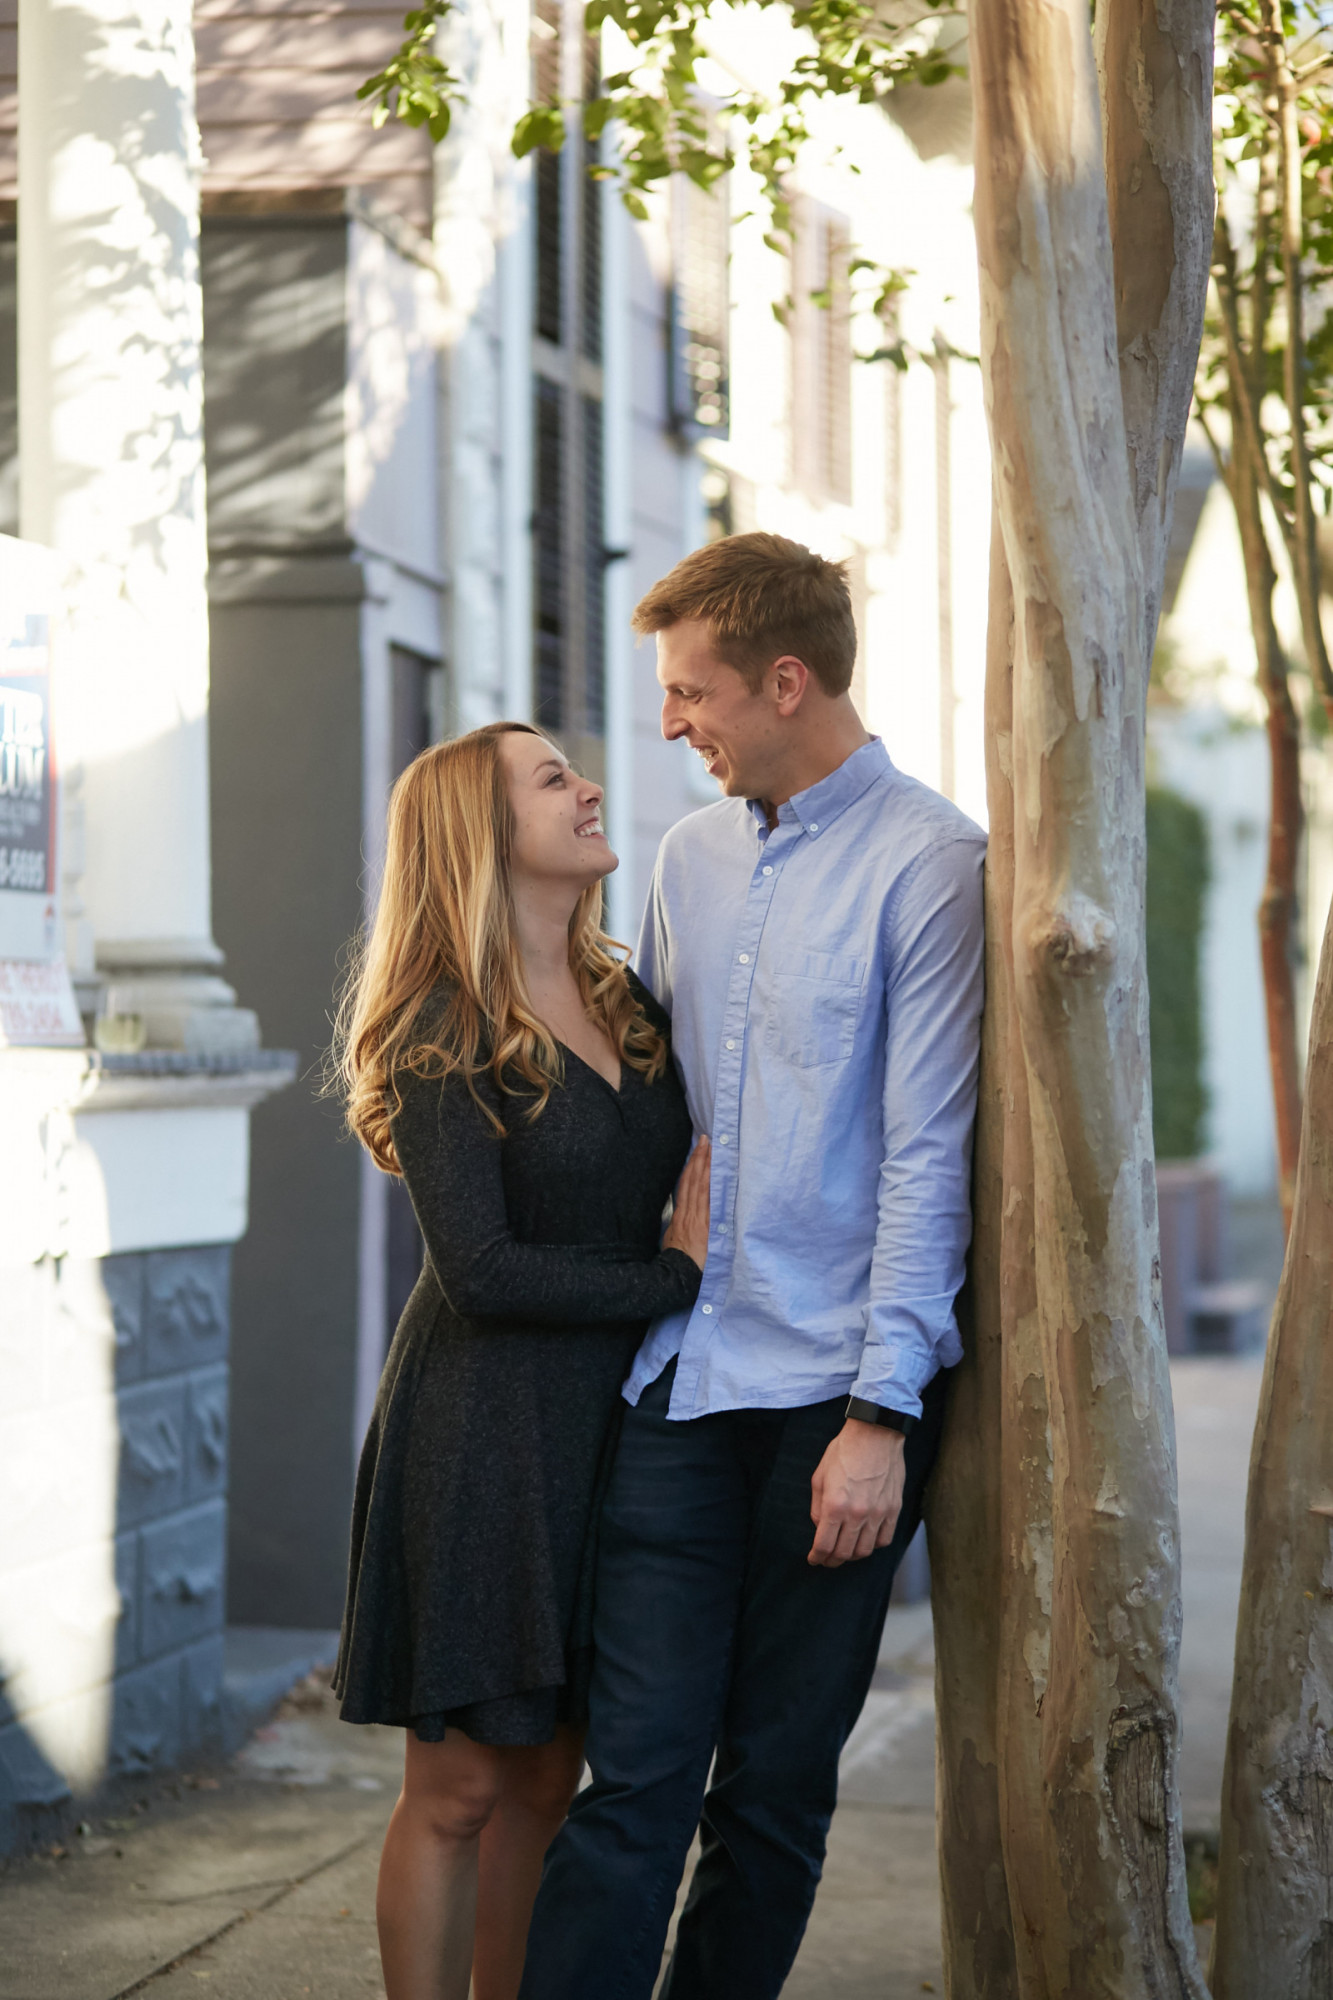 Christa and Jon | Engaged | French Quarter